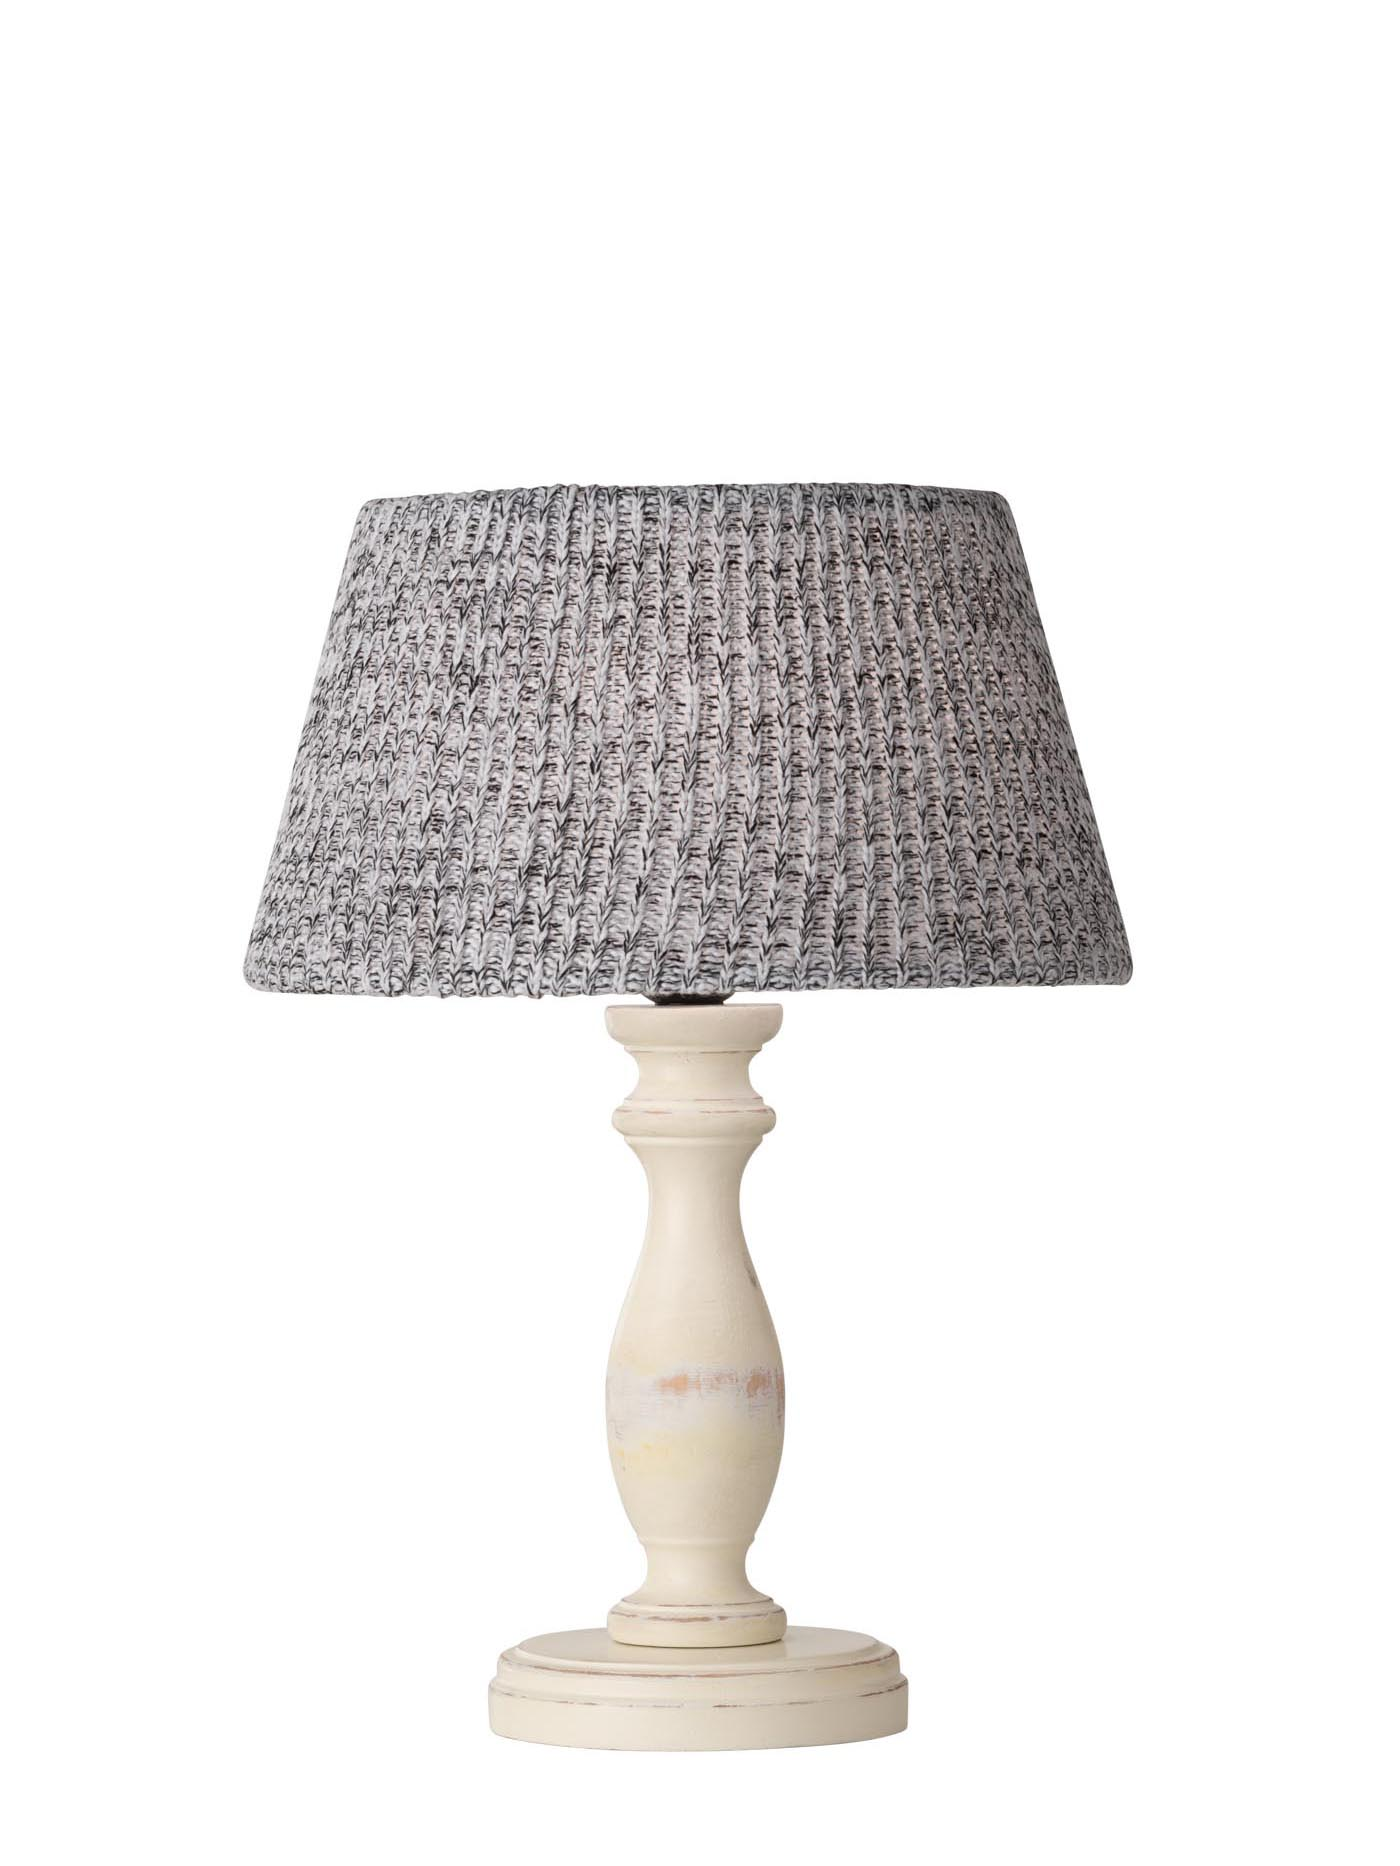 Knitone Bedside Table Lamp